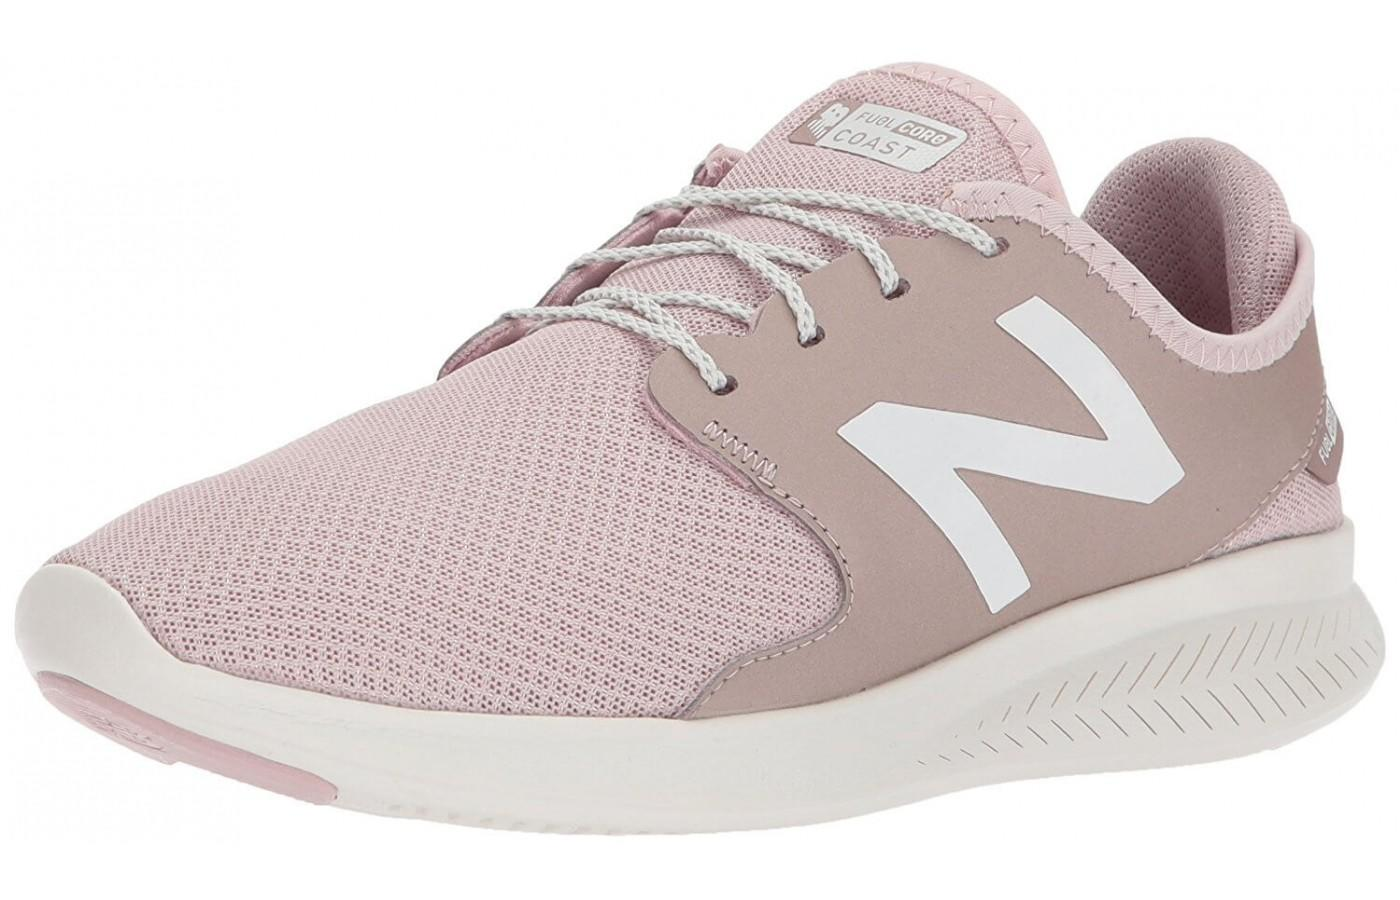 The New Balance Fuelcore Coast V3 shown from the front/side